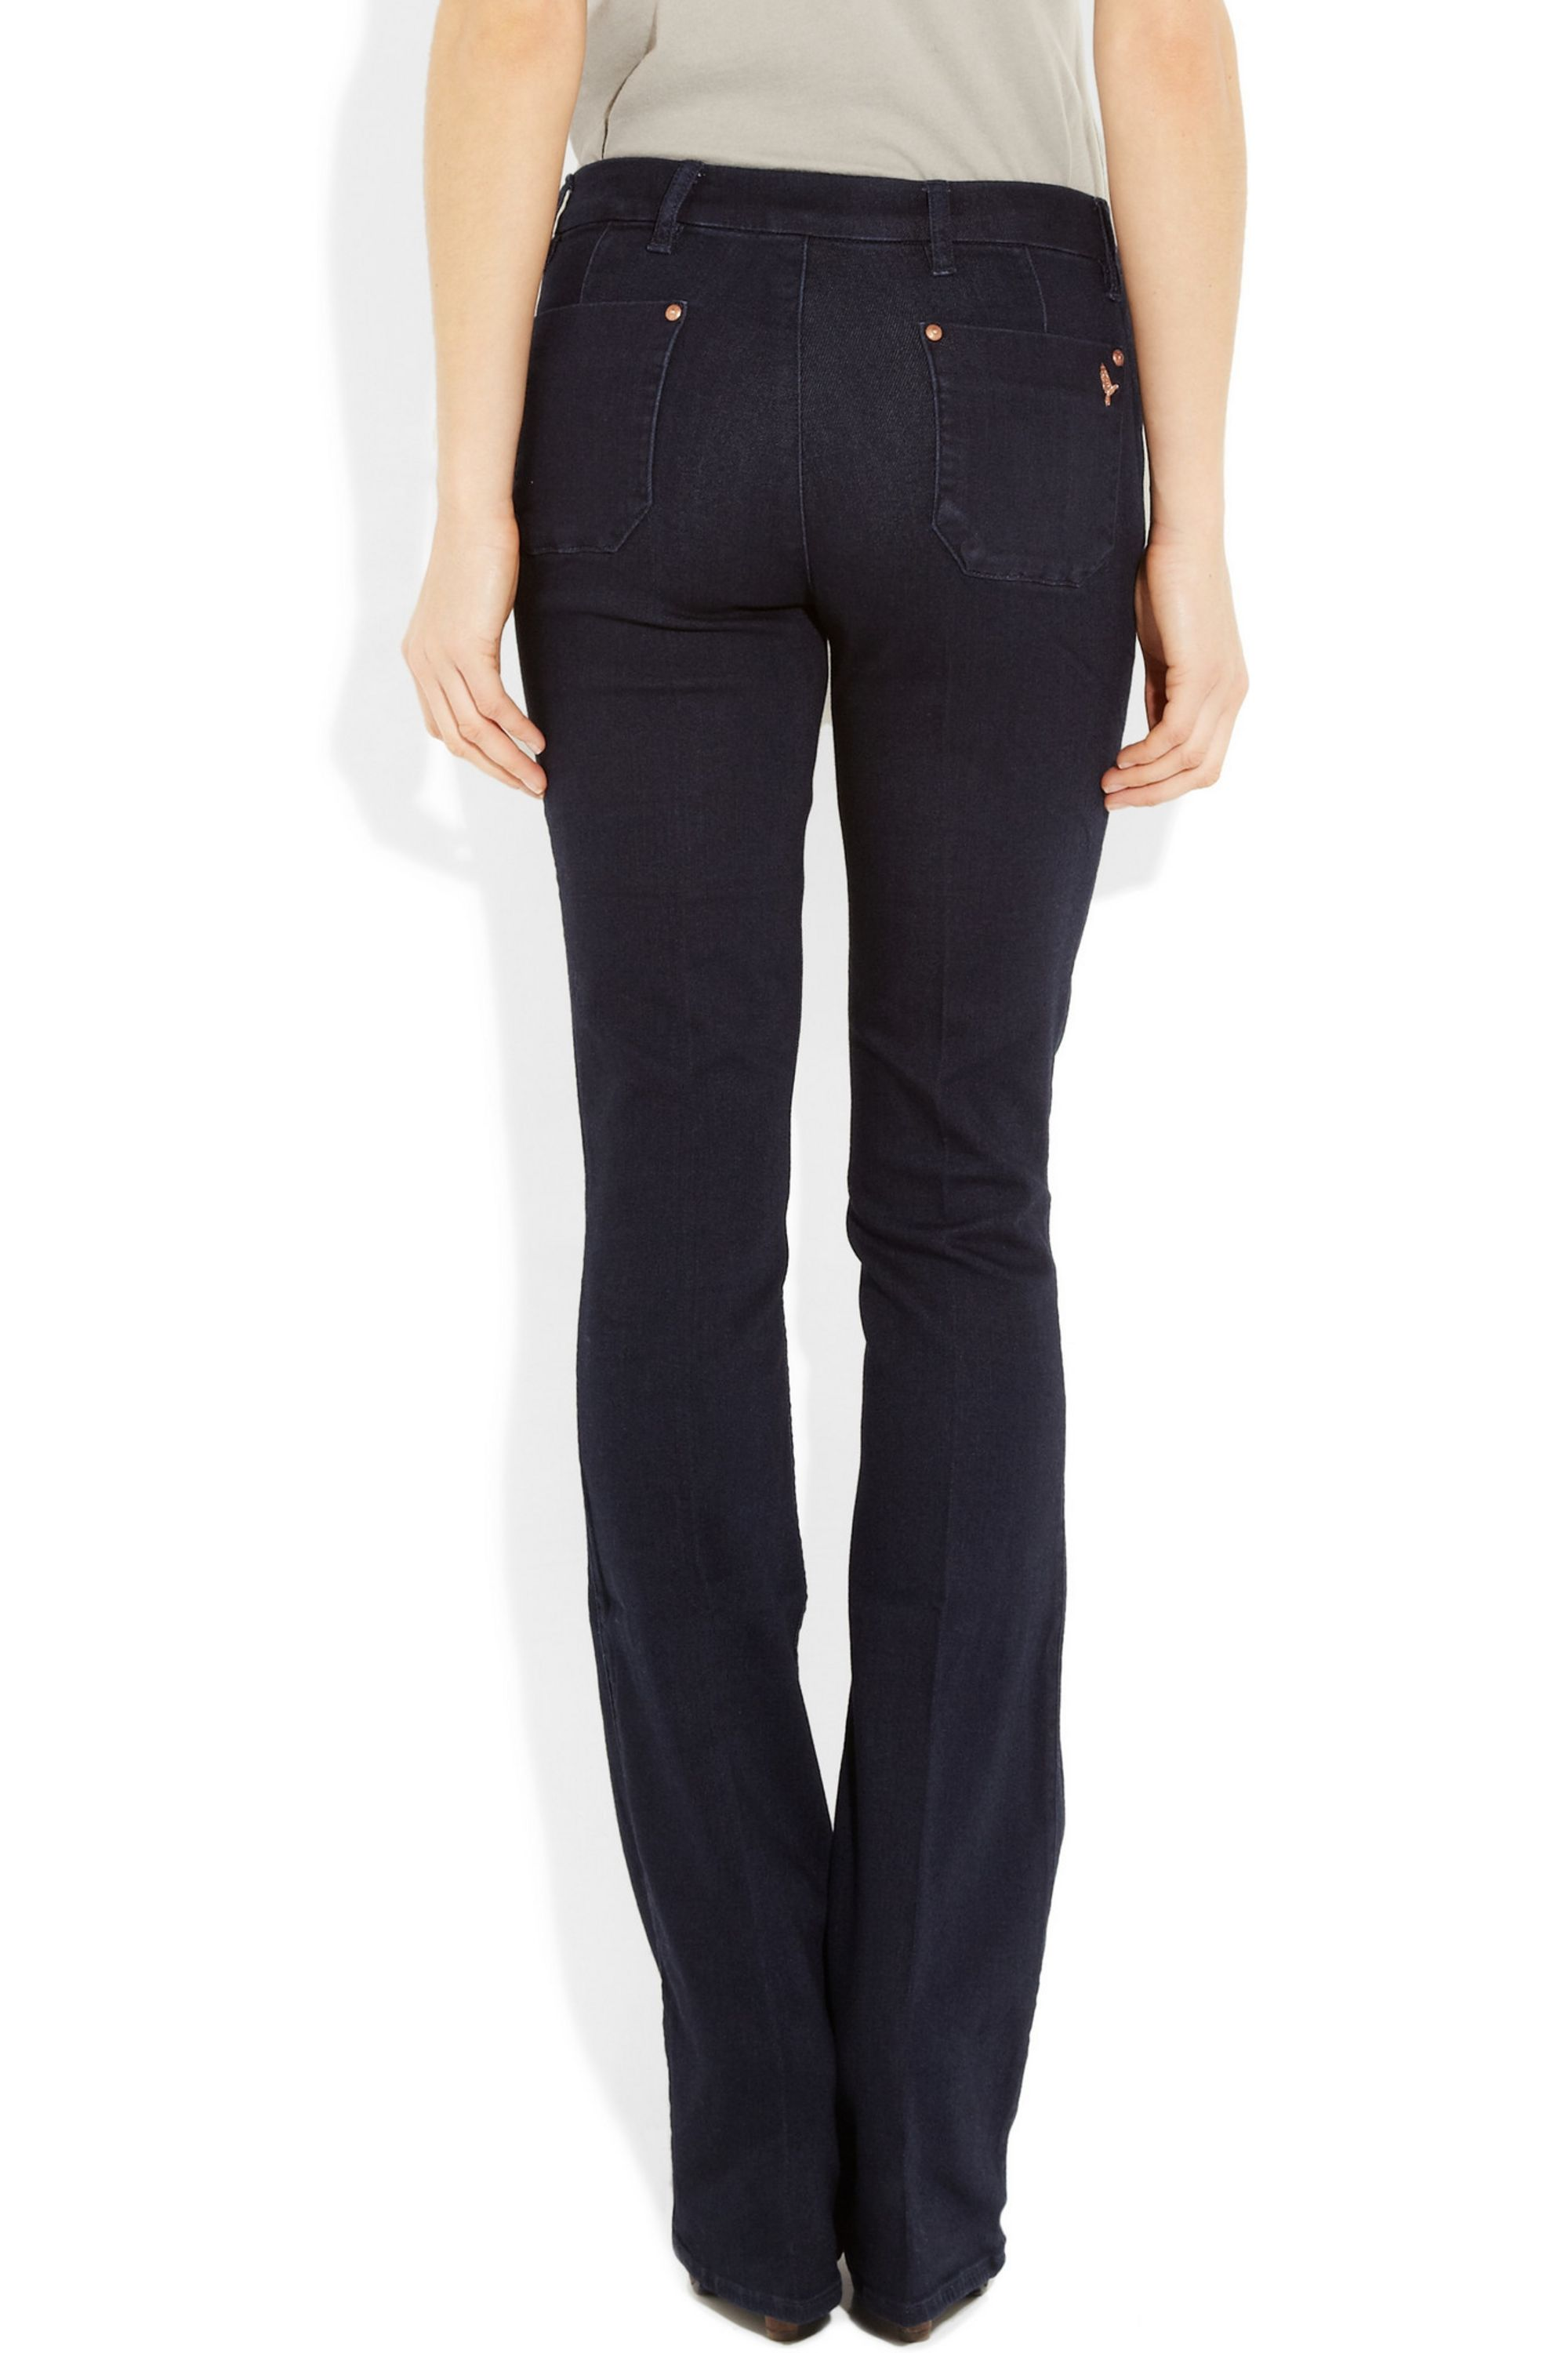 M.i.h Jeans Skinny Marrakesh mid-rise flared jeans